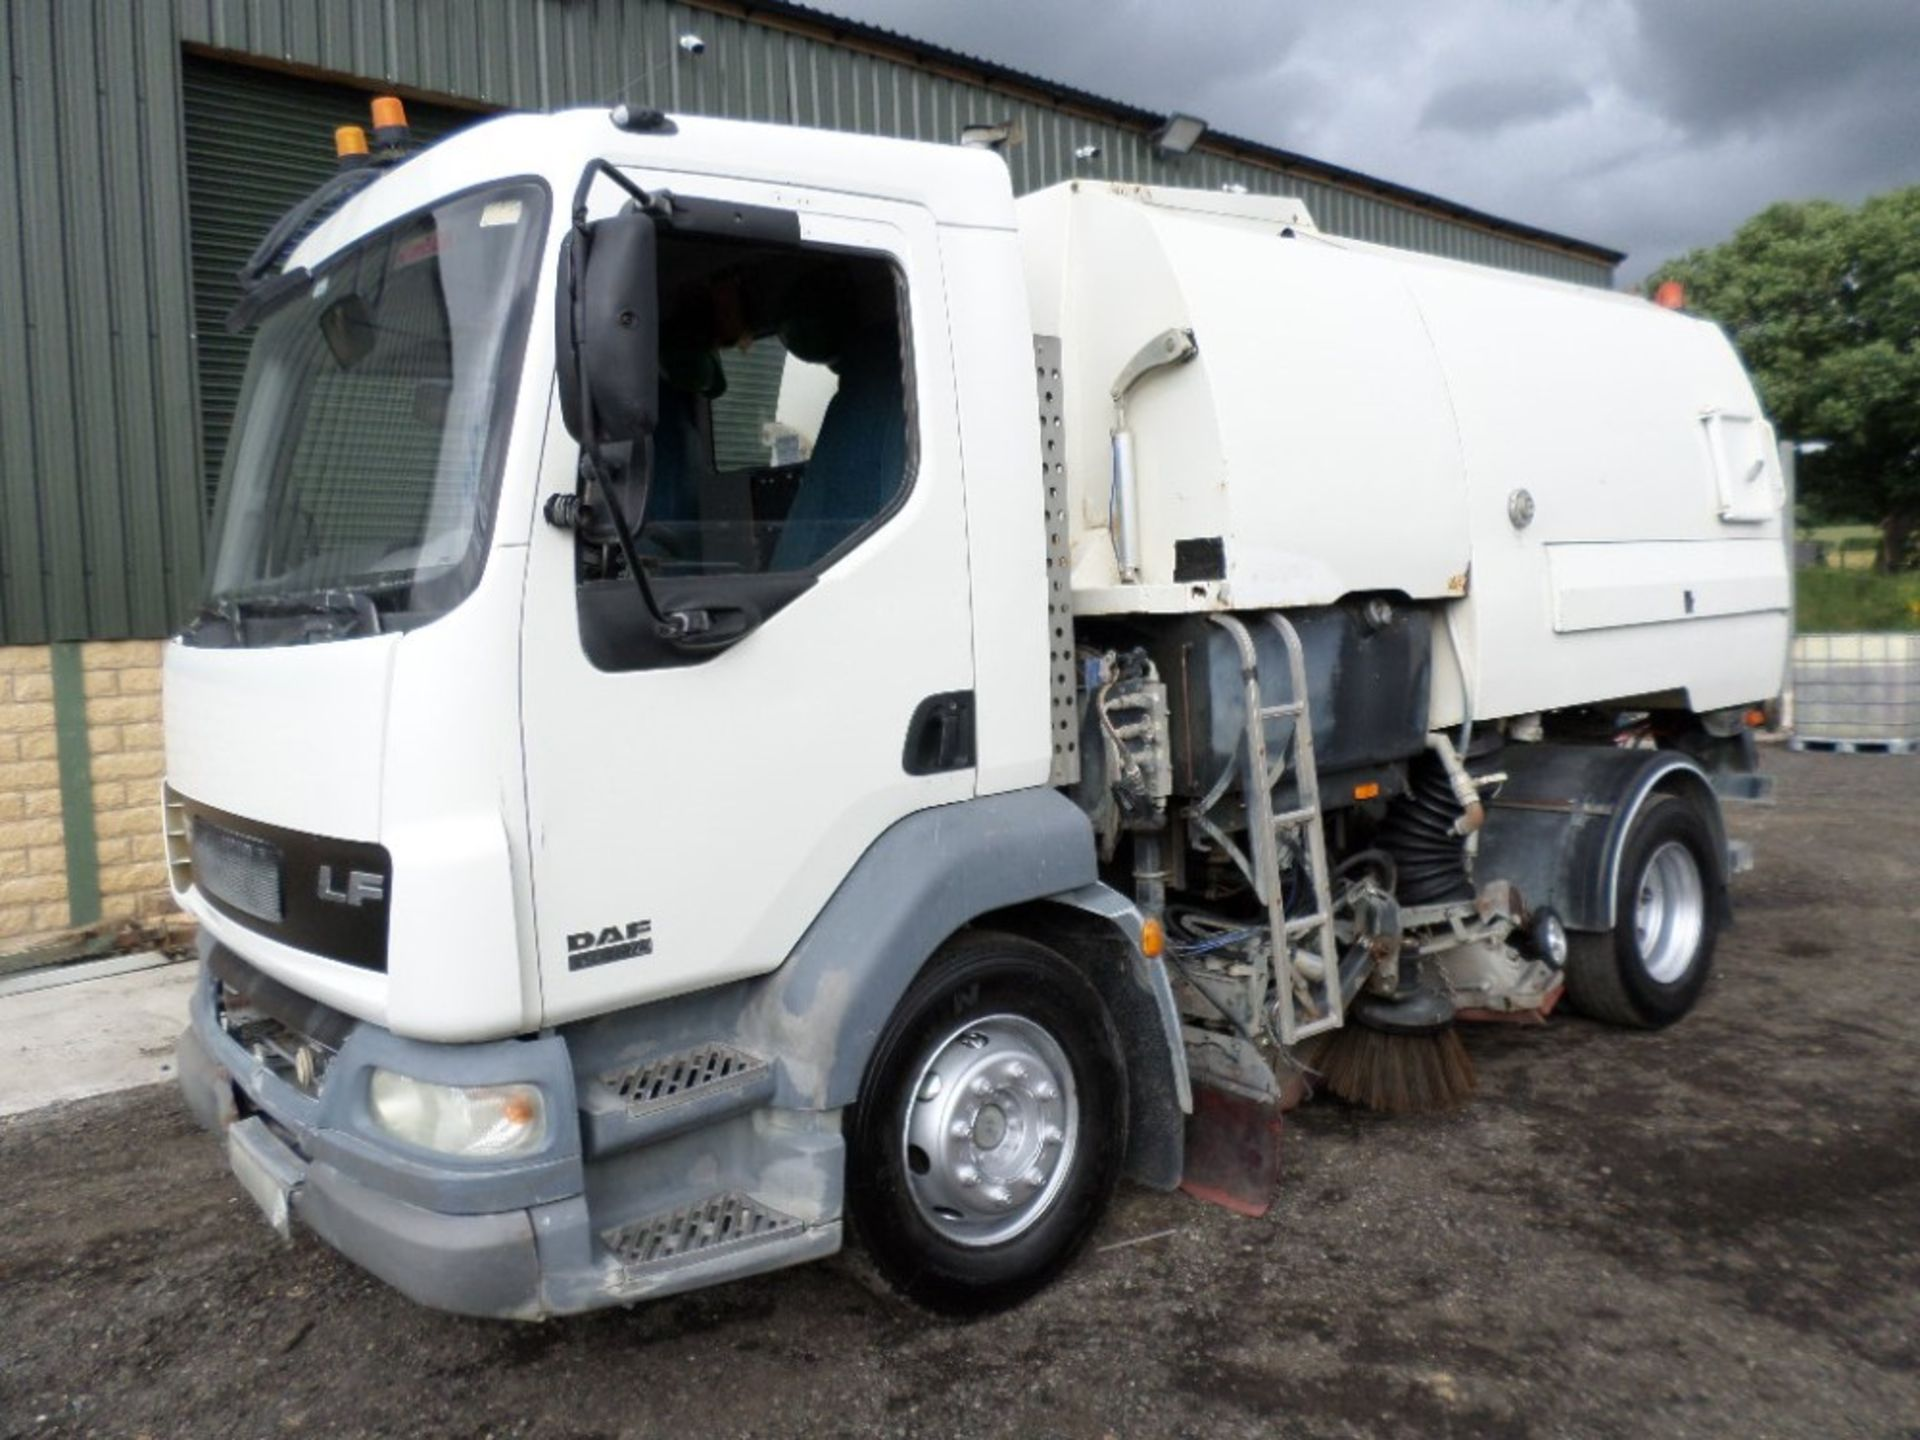 04 reg DAF LF 55.160 JOHNSON SWEEPER (LOCATION SHEFFIELD) 1ST REG 04/04, 93408M, V5 HERE, 2 FORMER - Image 2 of 15